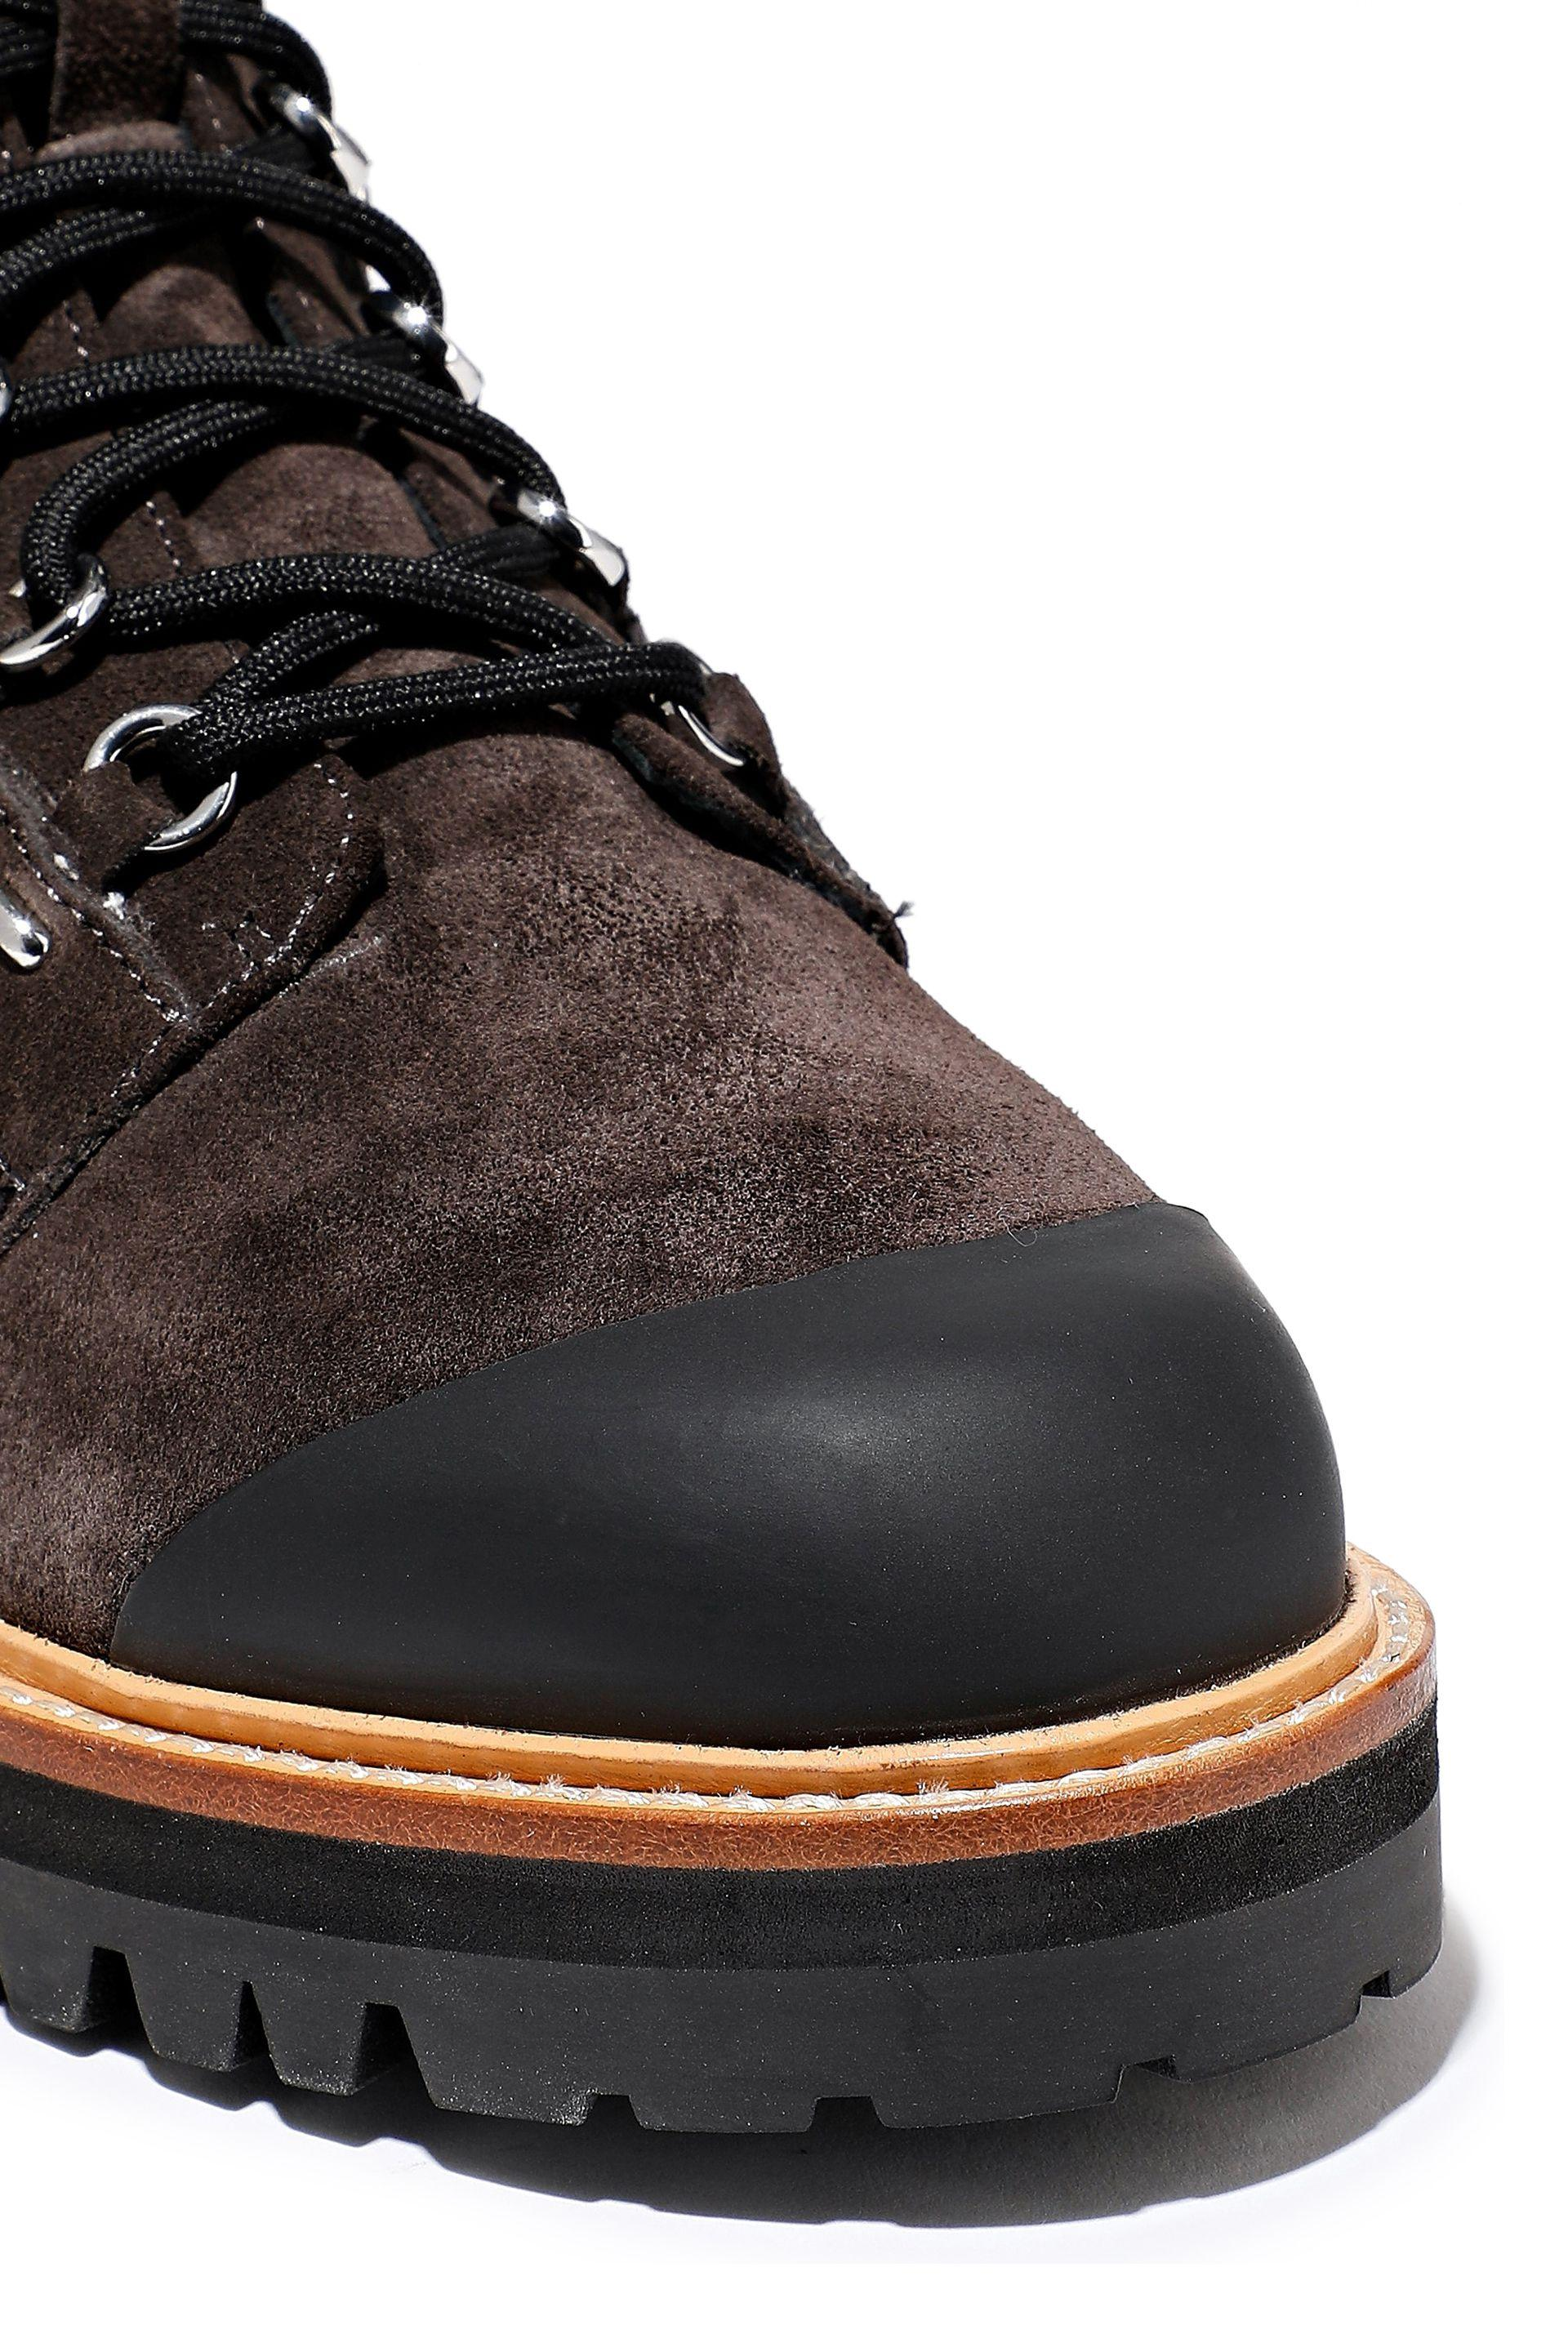 26c19093bfda Sigerson Morrison Irene Rubber-paneled Suede Ankle Boots Dark Brown. View  fullscreen